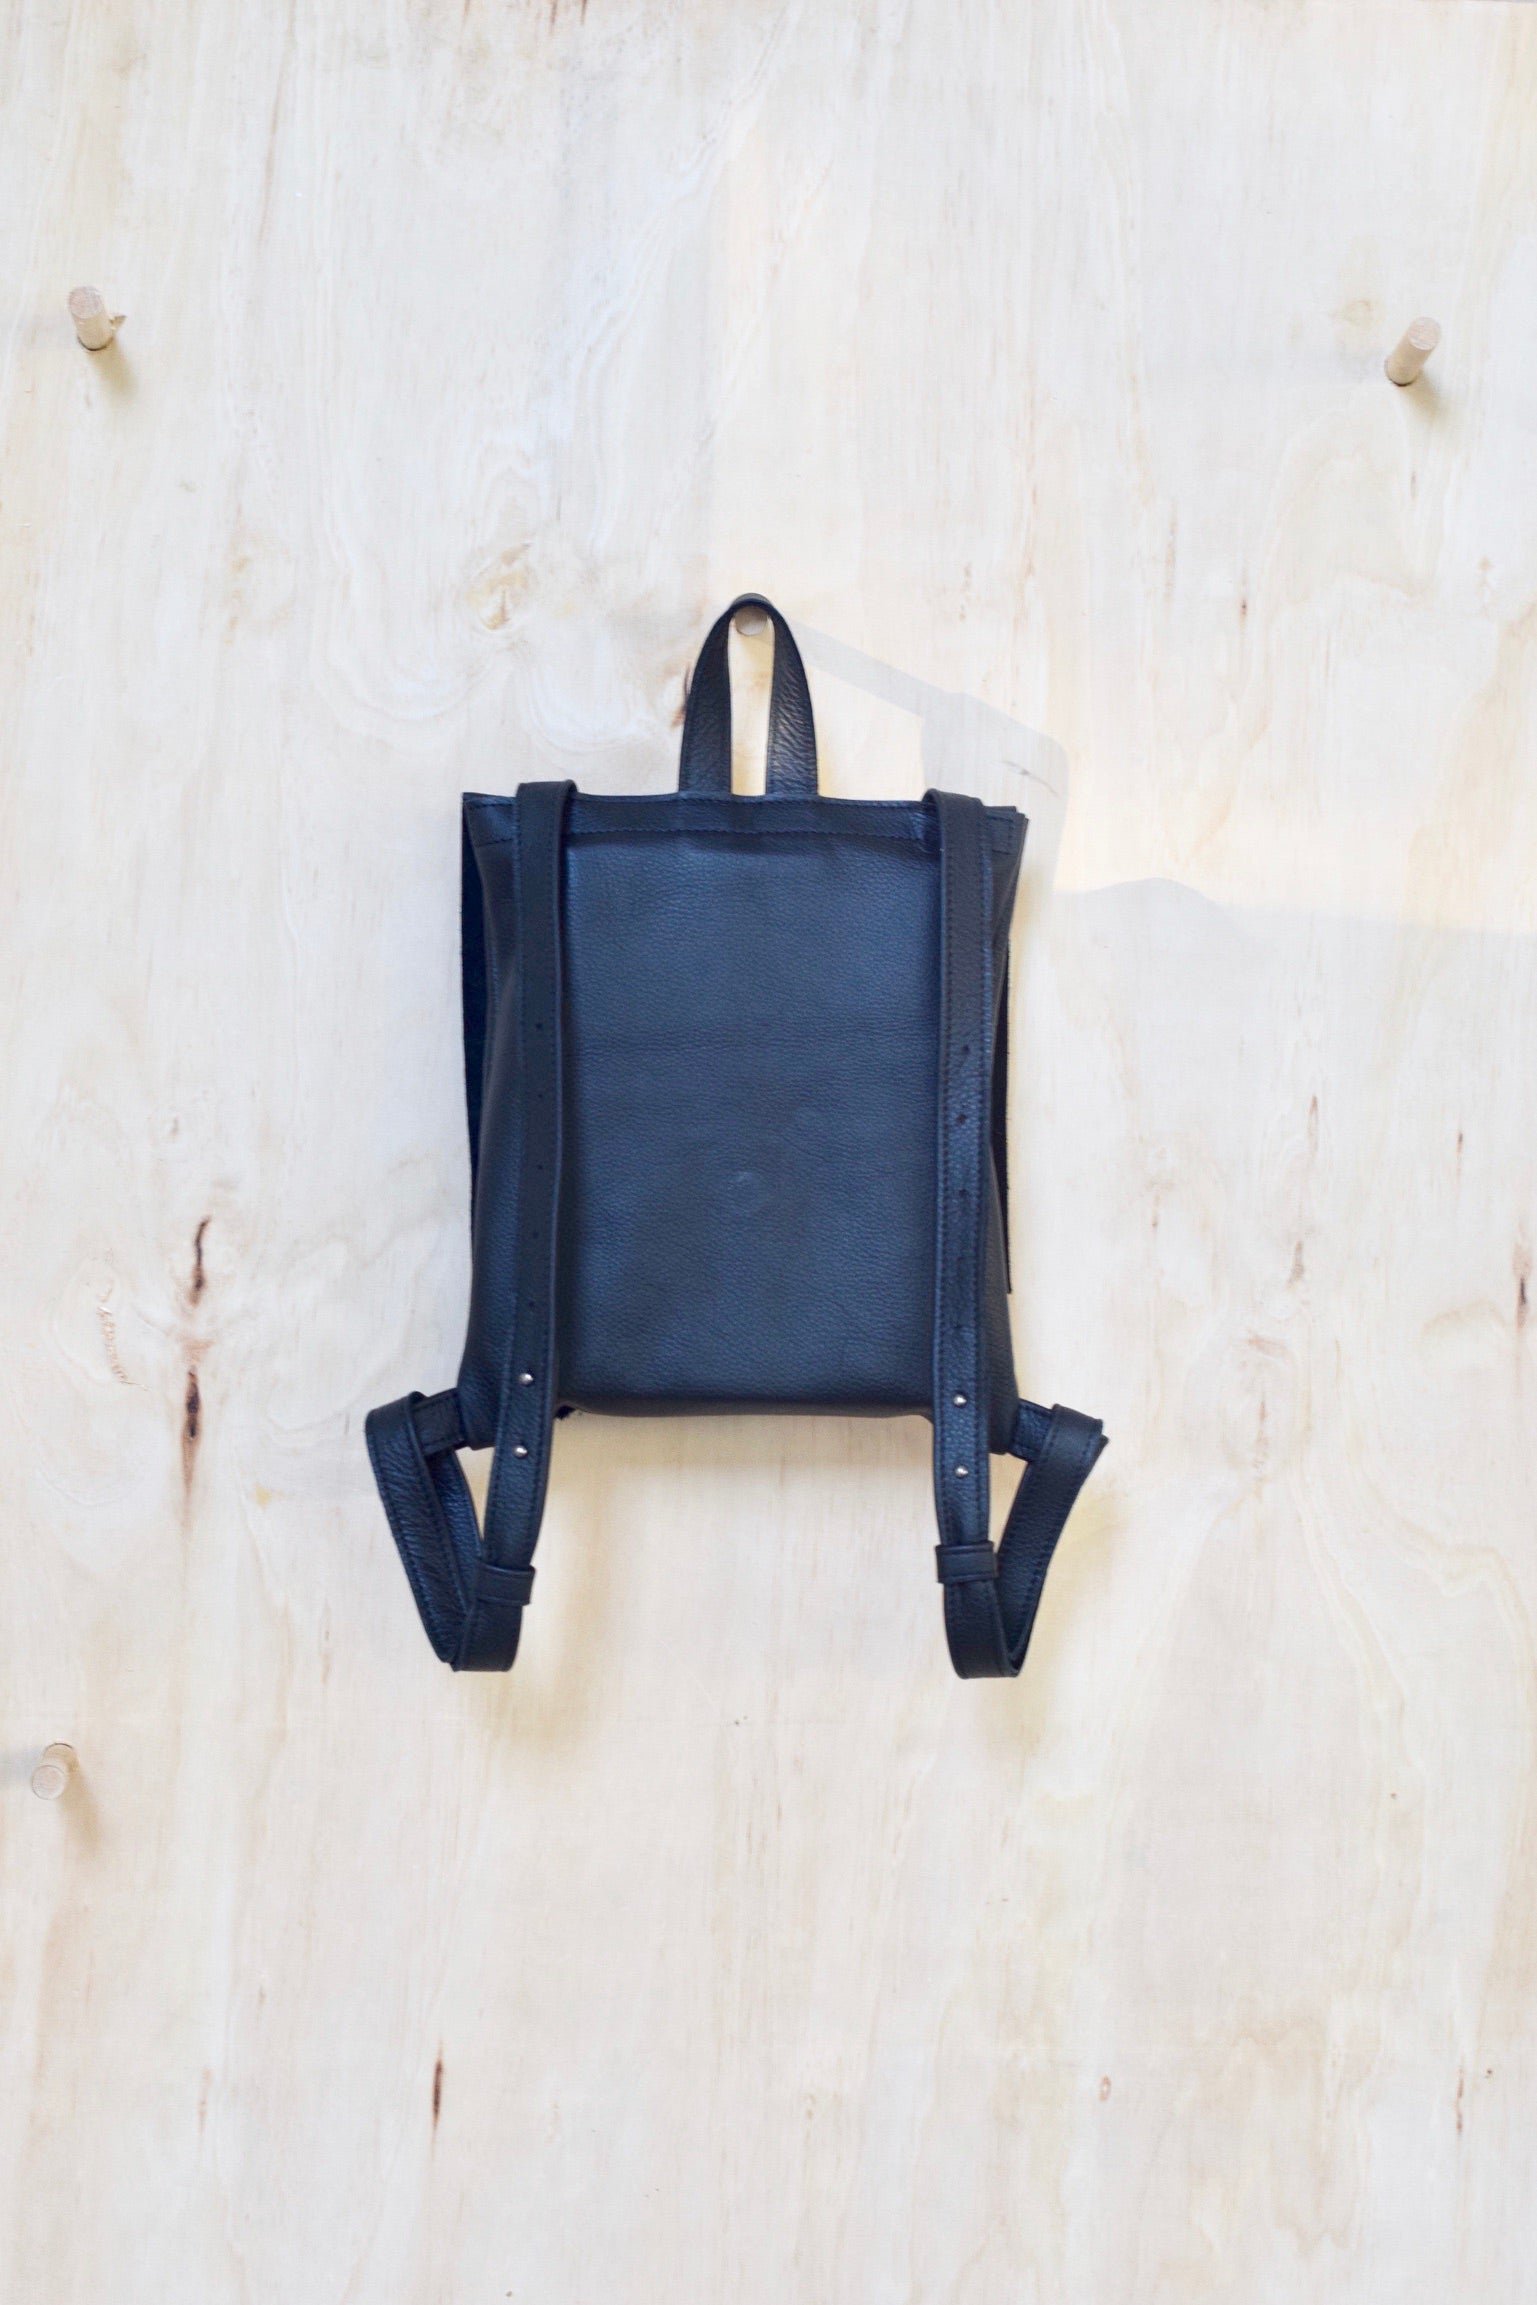 O OSLO - leather backpack with hook strap - black